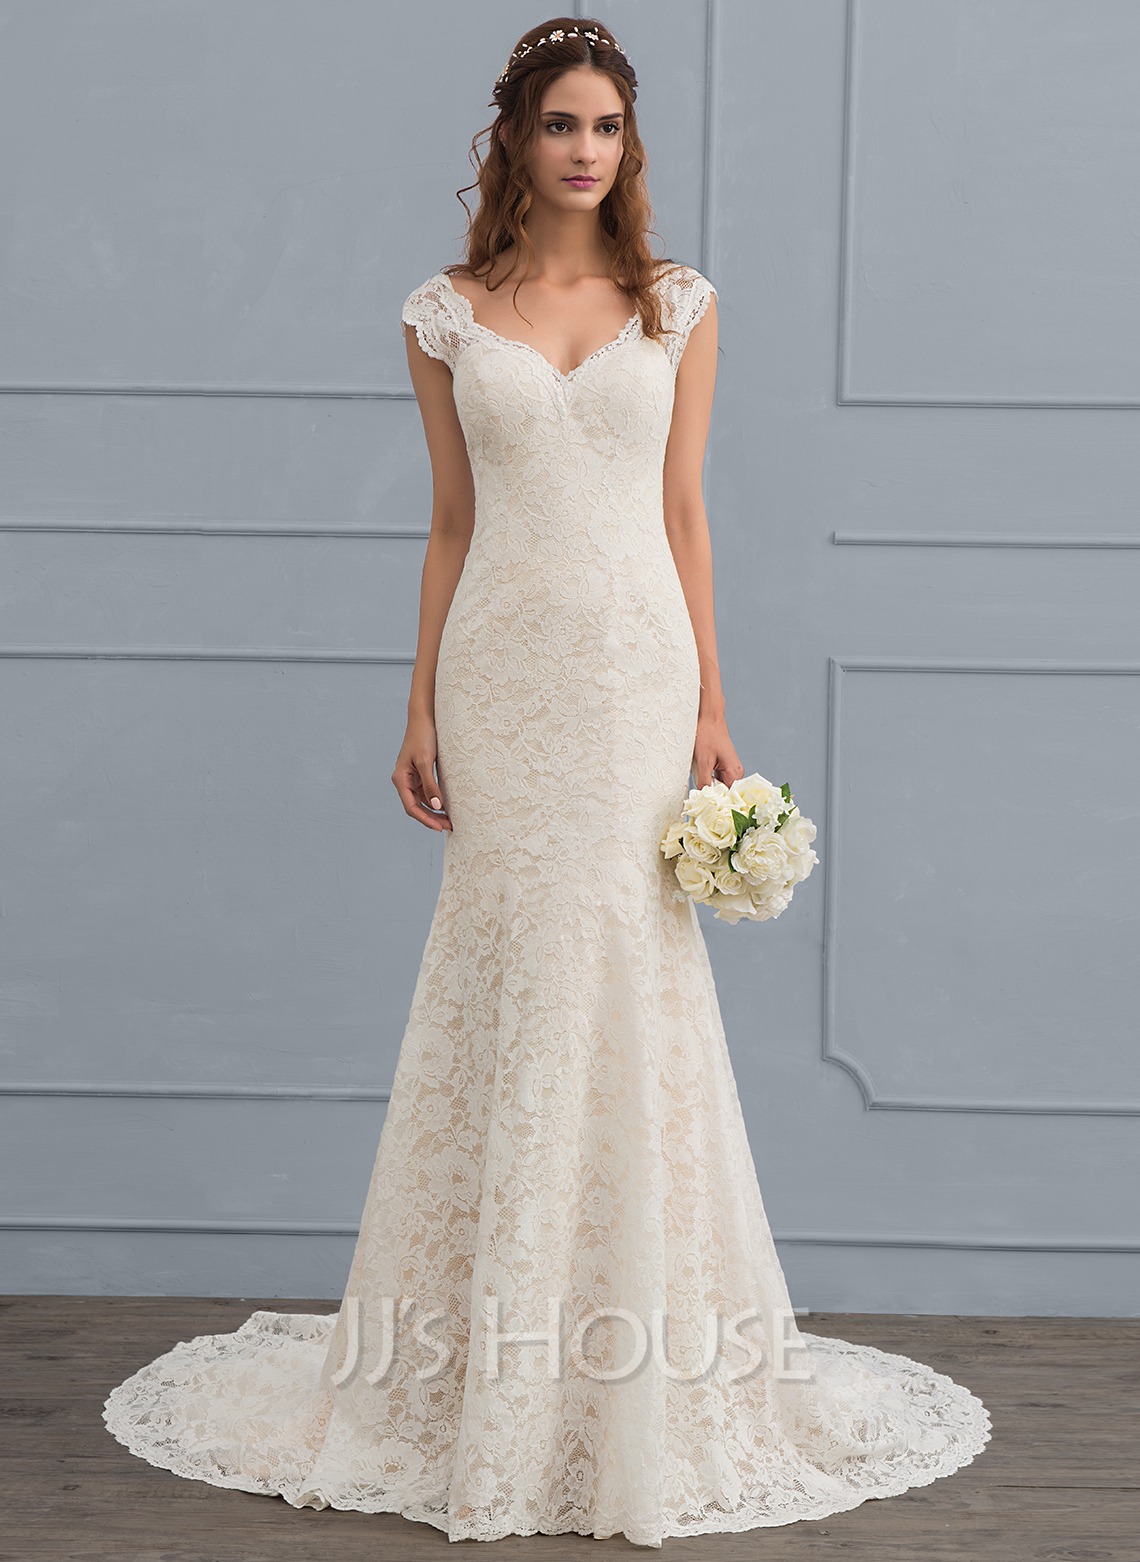 850ddb14e074 Trumpet/Mermaid V-neck Court Train Lace Wedding Dress (002118442 ...